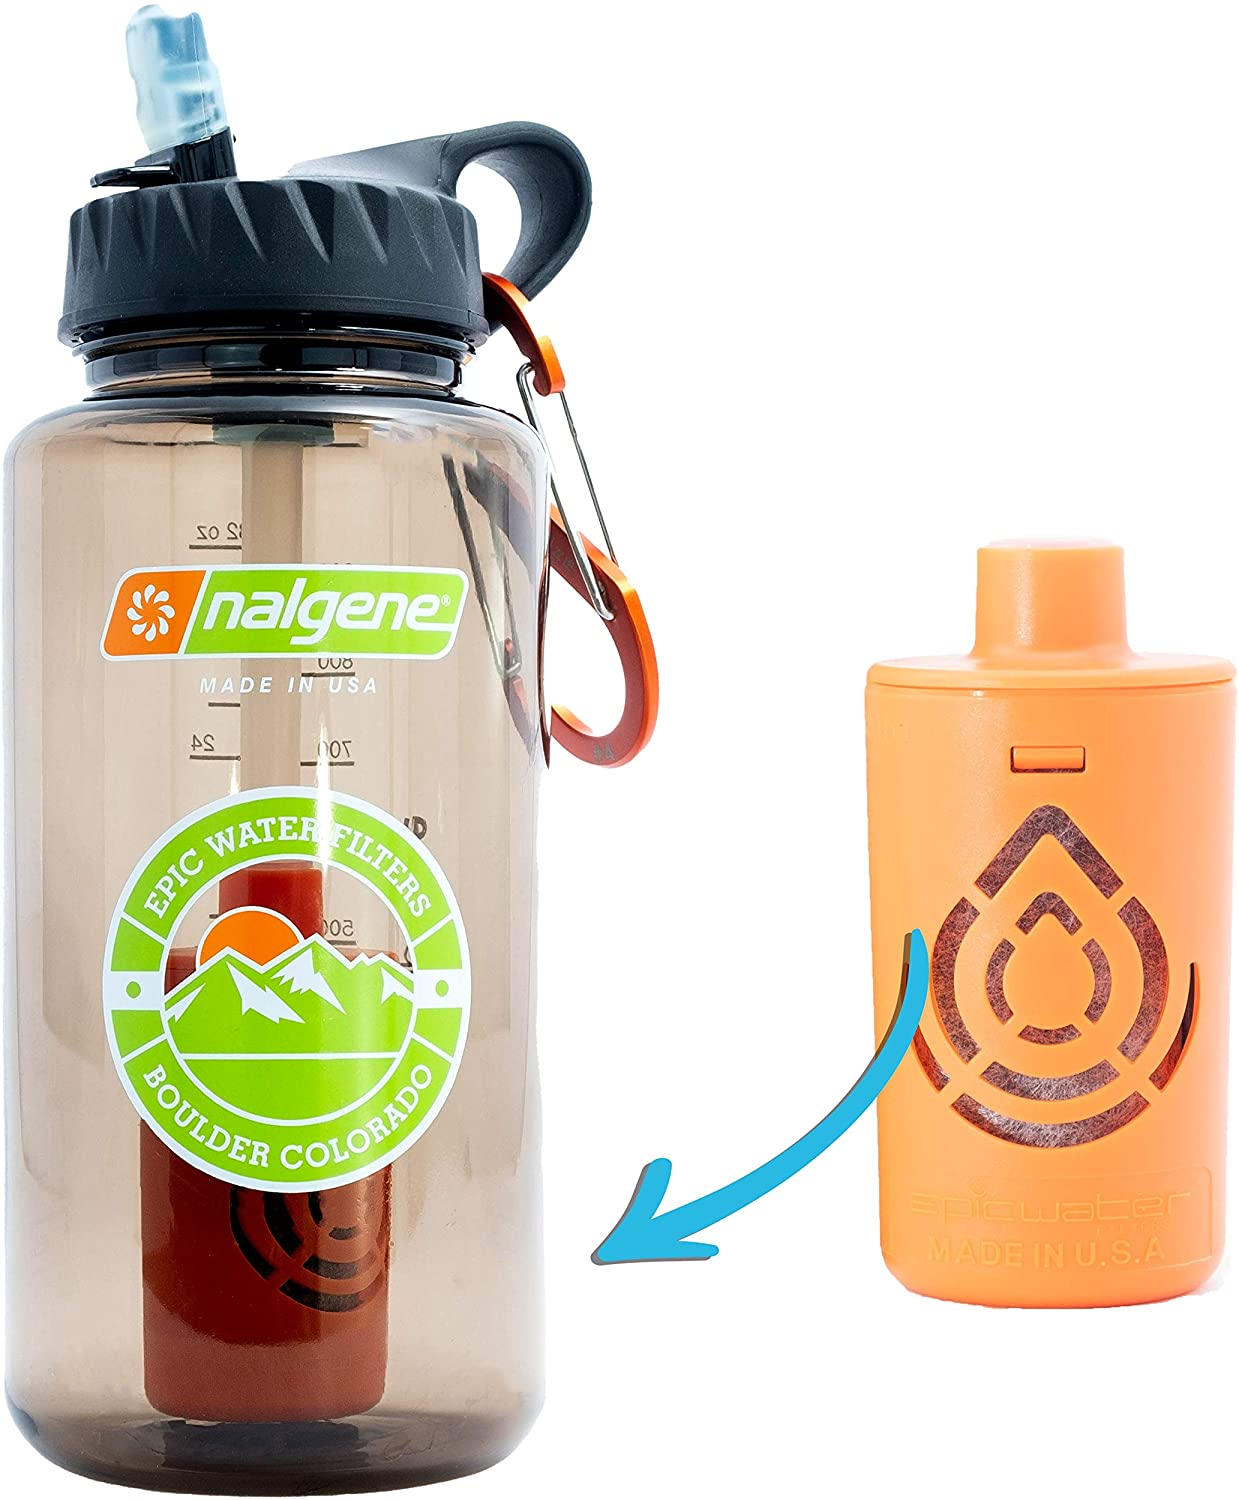 Giardia rated water filter. Giardia water filter. ShieldSquare Captcha